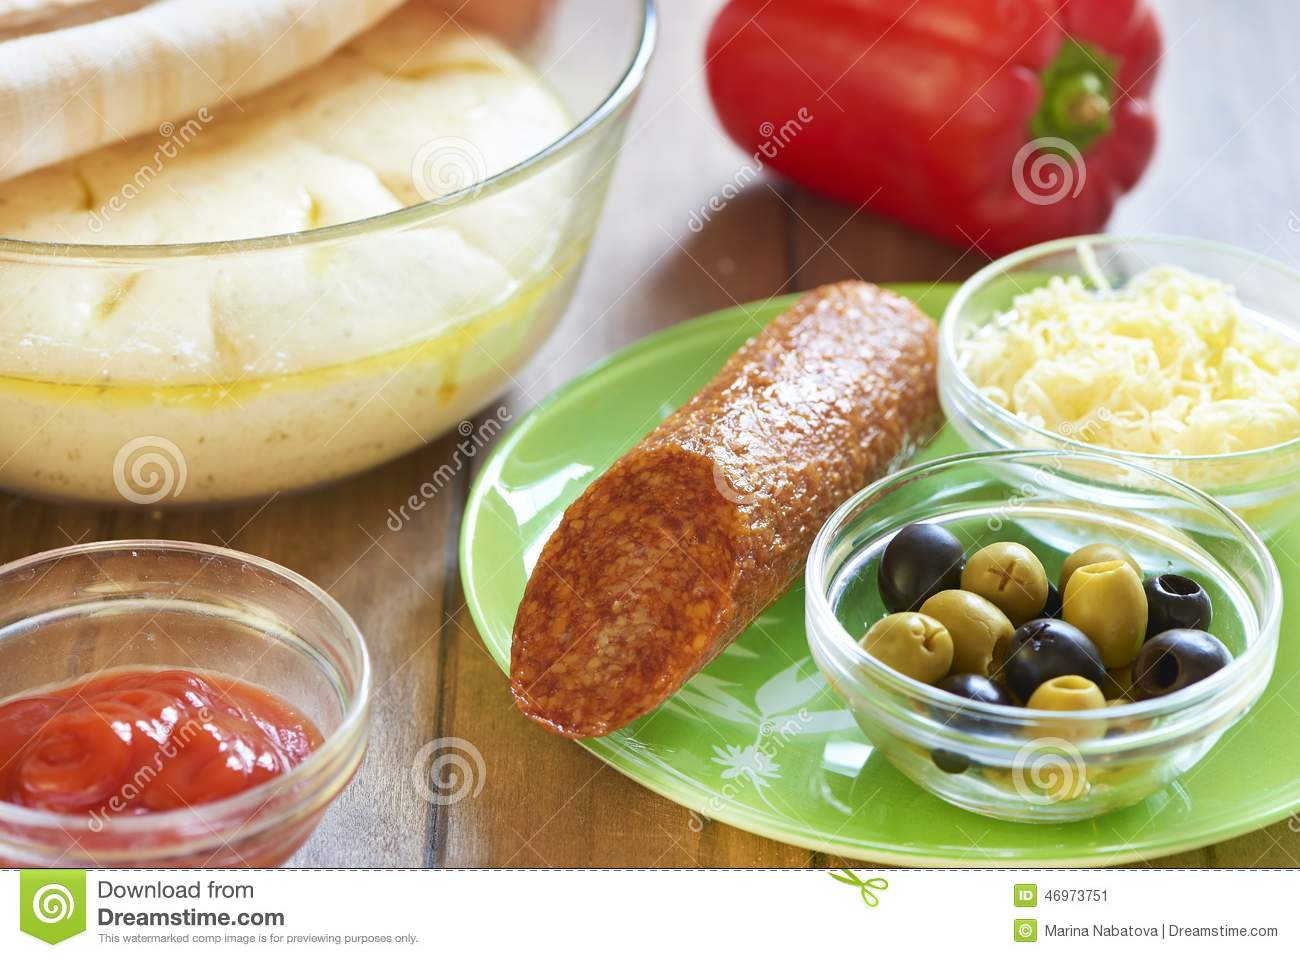 Download Homemade Pizza With Pepperoni, Pepper And Olives. Cooking Process. Step 4. Ingredients For Pizza Stock Image - Image of cheese, delicious: 46973751